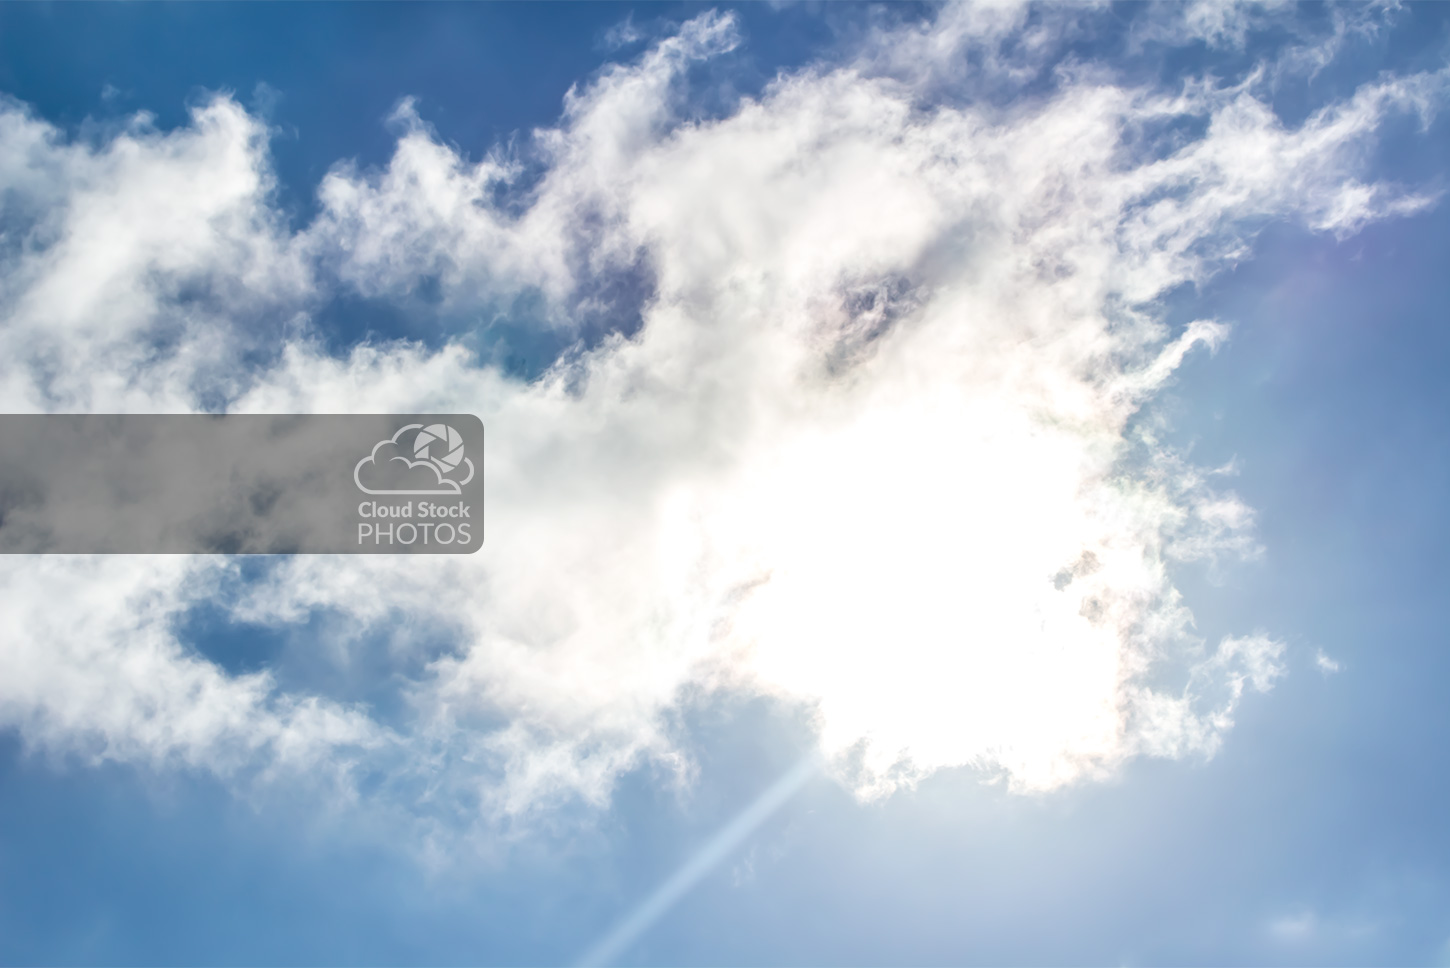 Stock image of beautiful clouds with the sun shining brightly, and subtle shades of yellow, green, orange and purple around the cloud's edges.